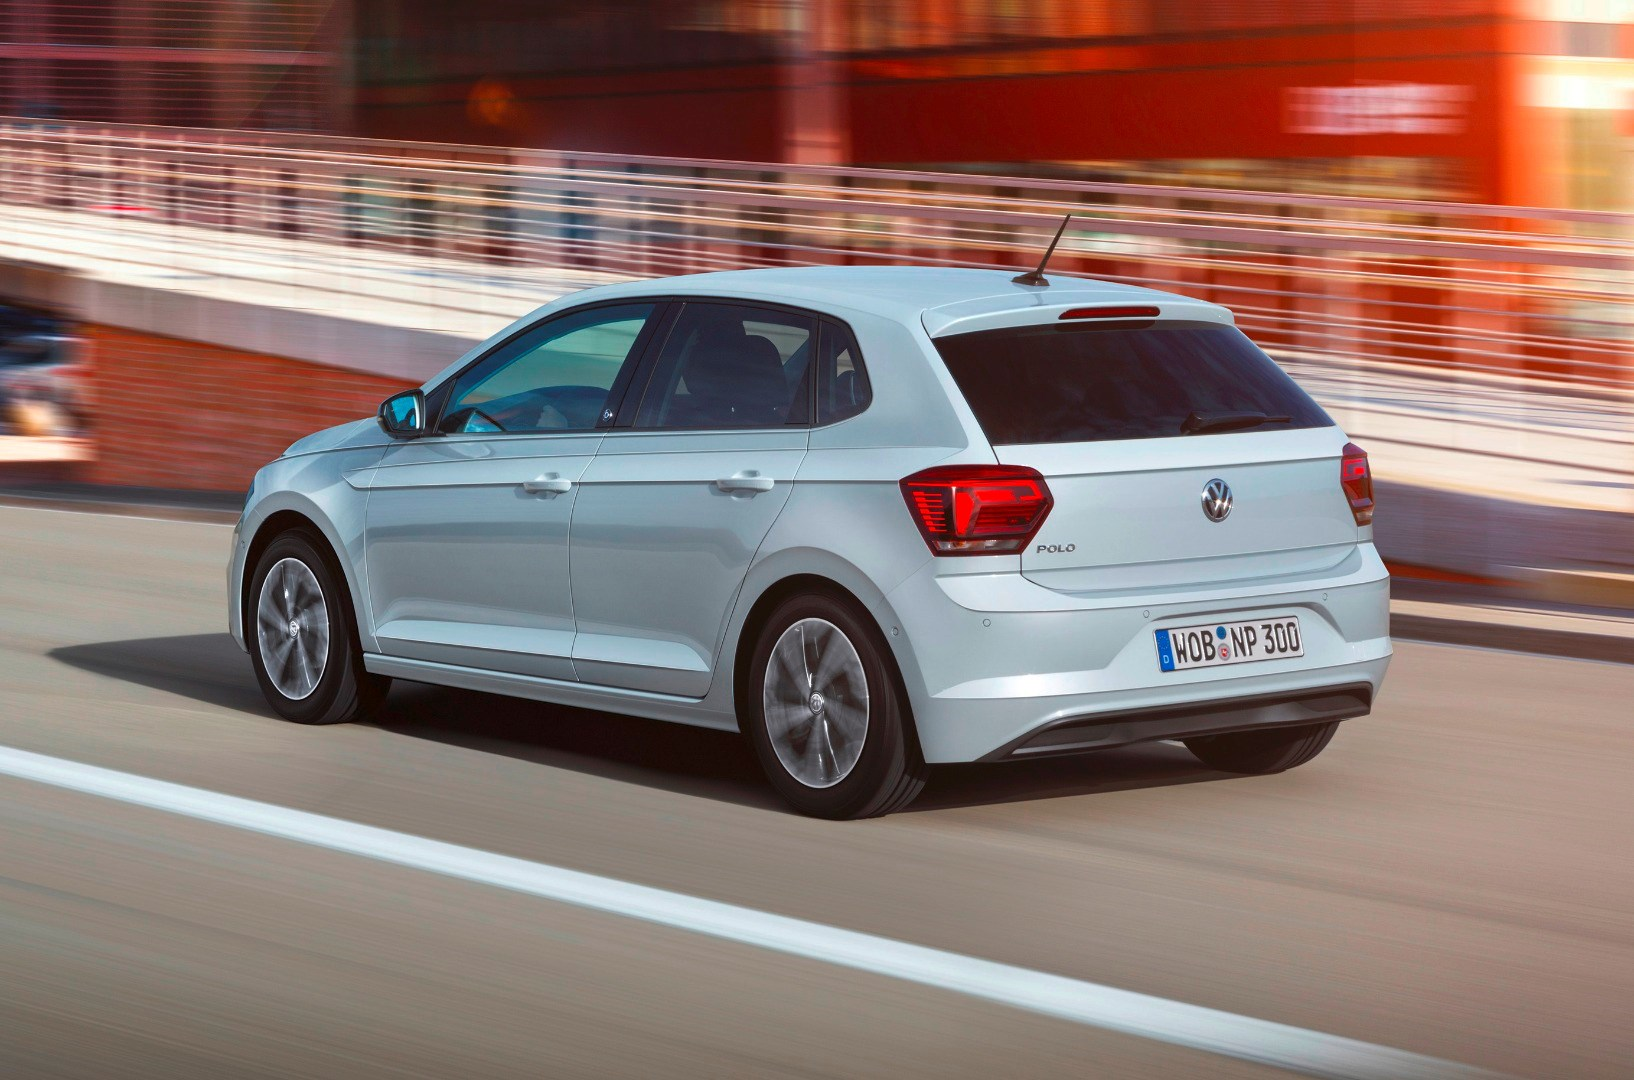 2017 Volkswagen Polo Revealed, Edges Closer To Golf Thumbnail